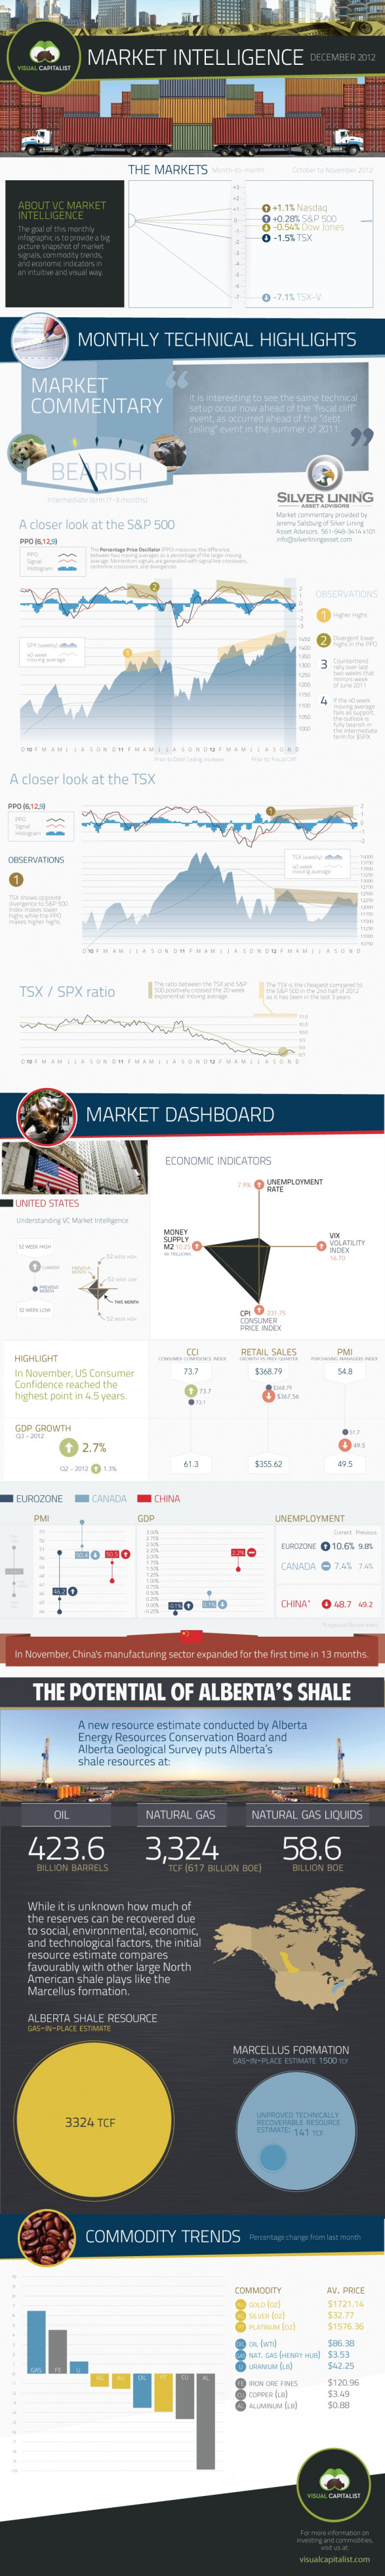 Visual Capitalist Market Intelligence: December